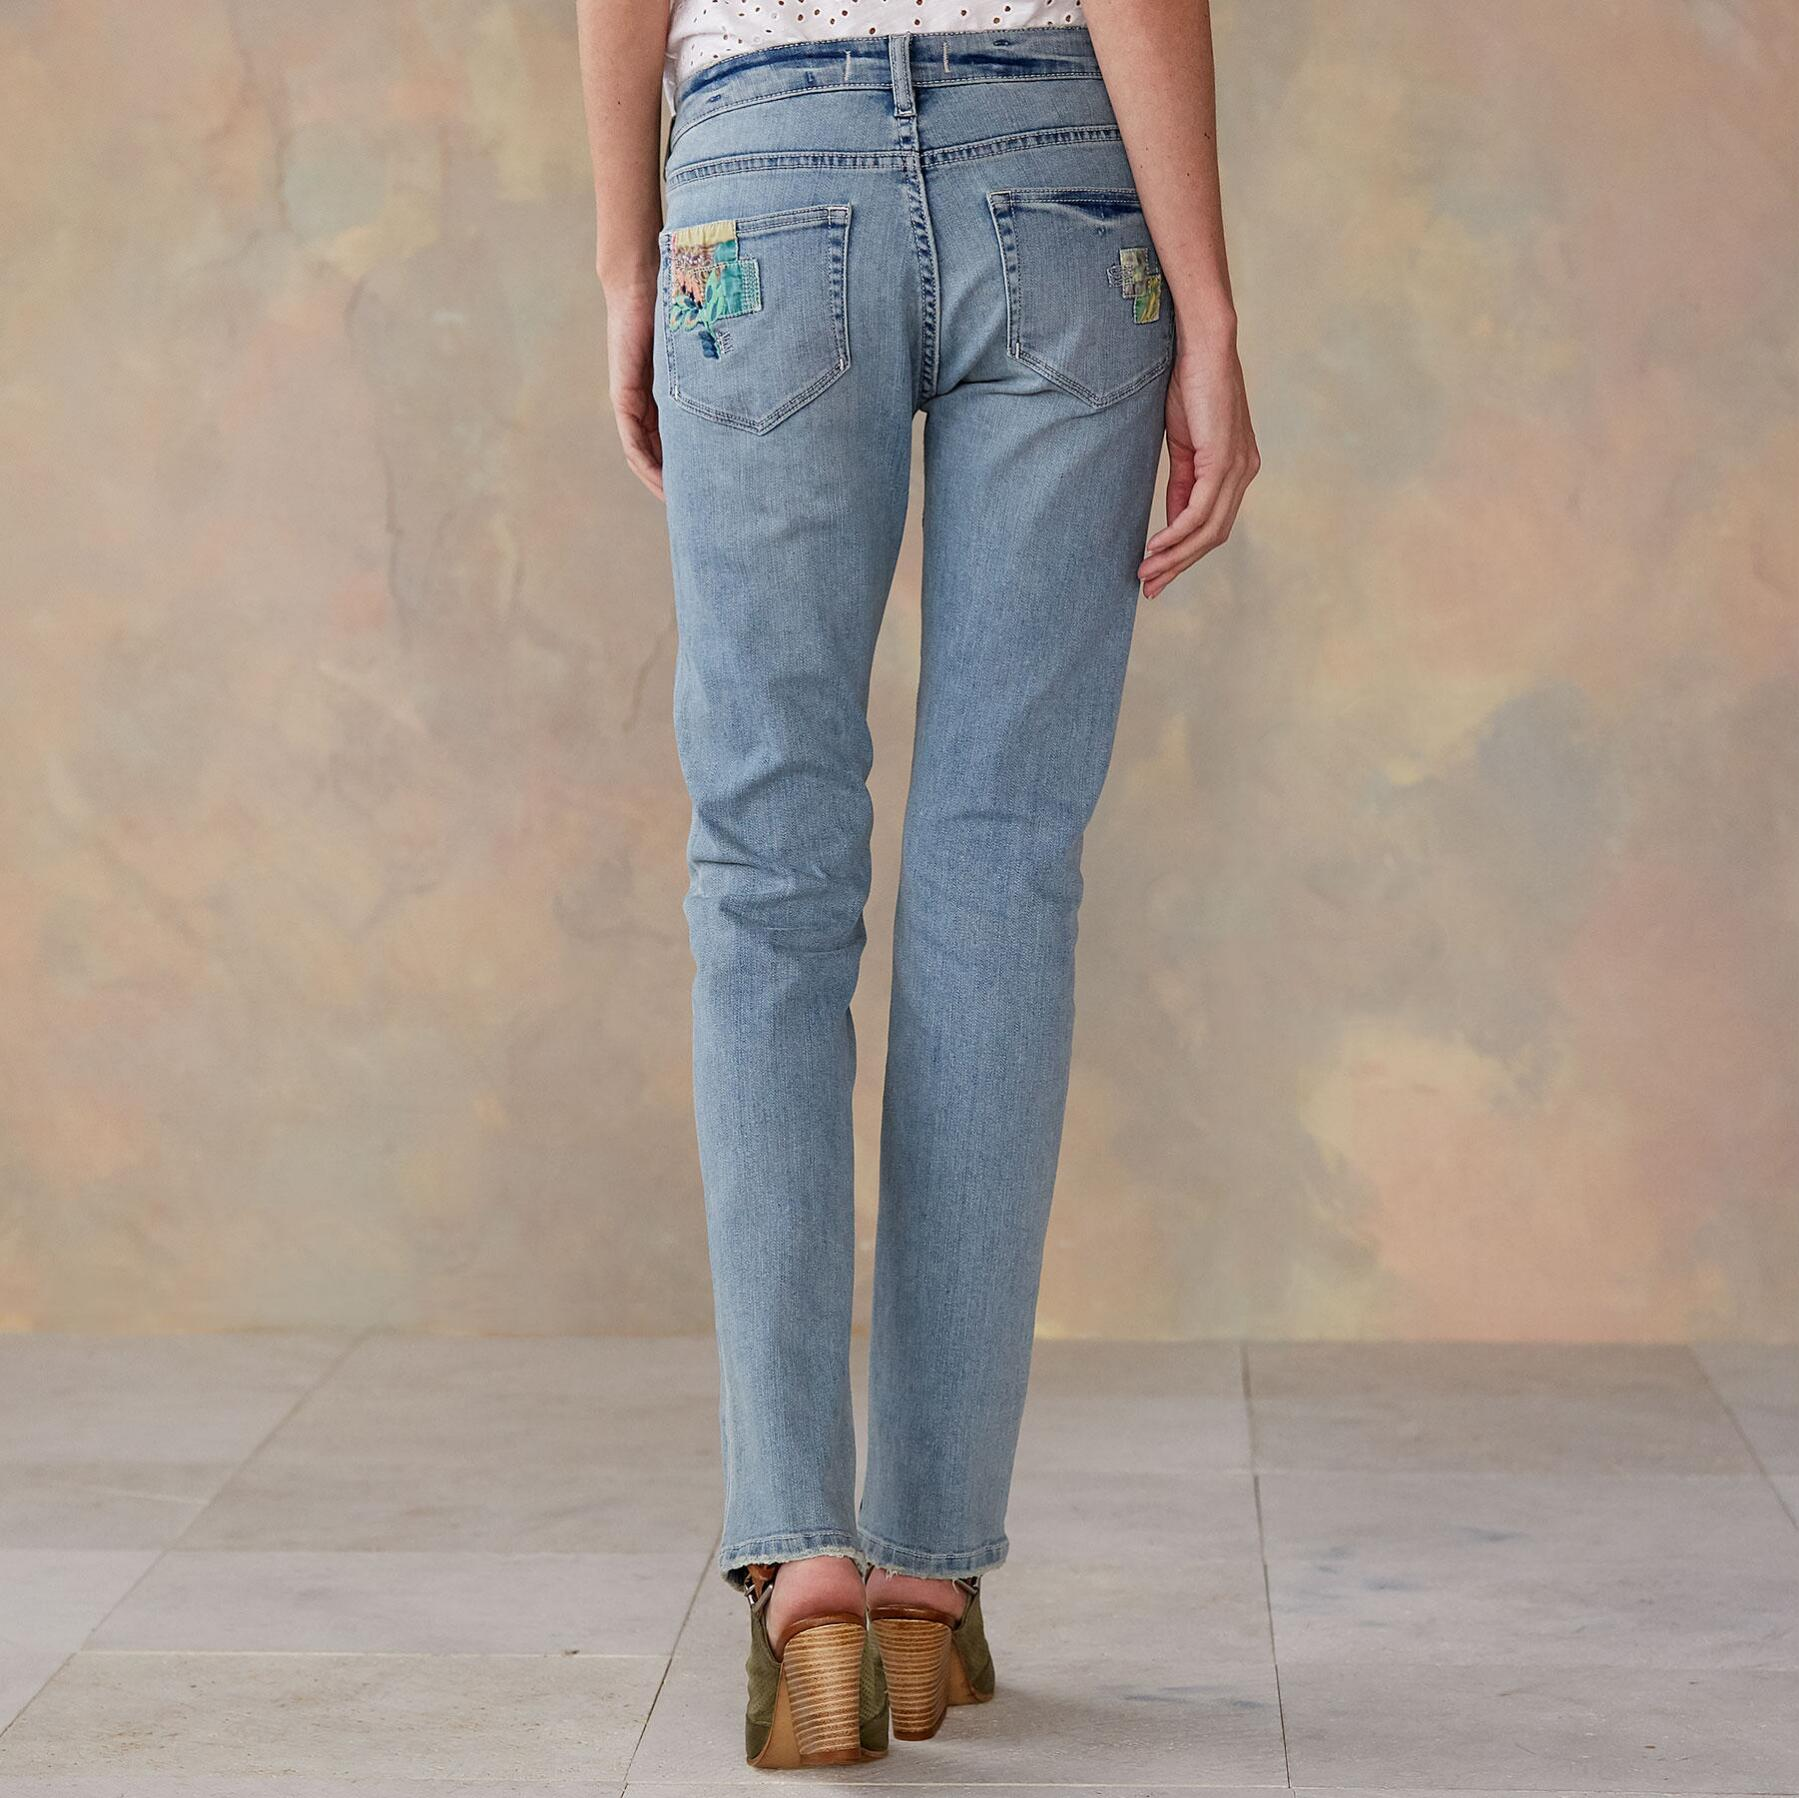 MAGNOLIA PATCH JEANS: View 2